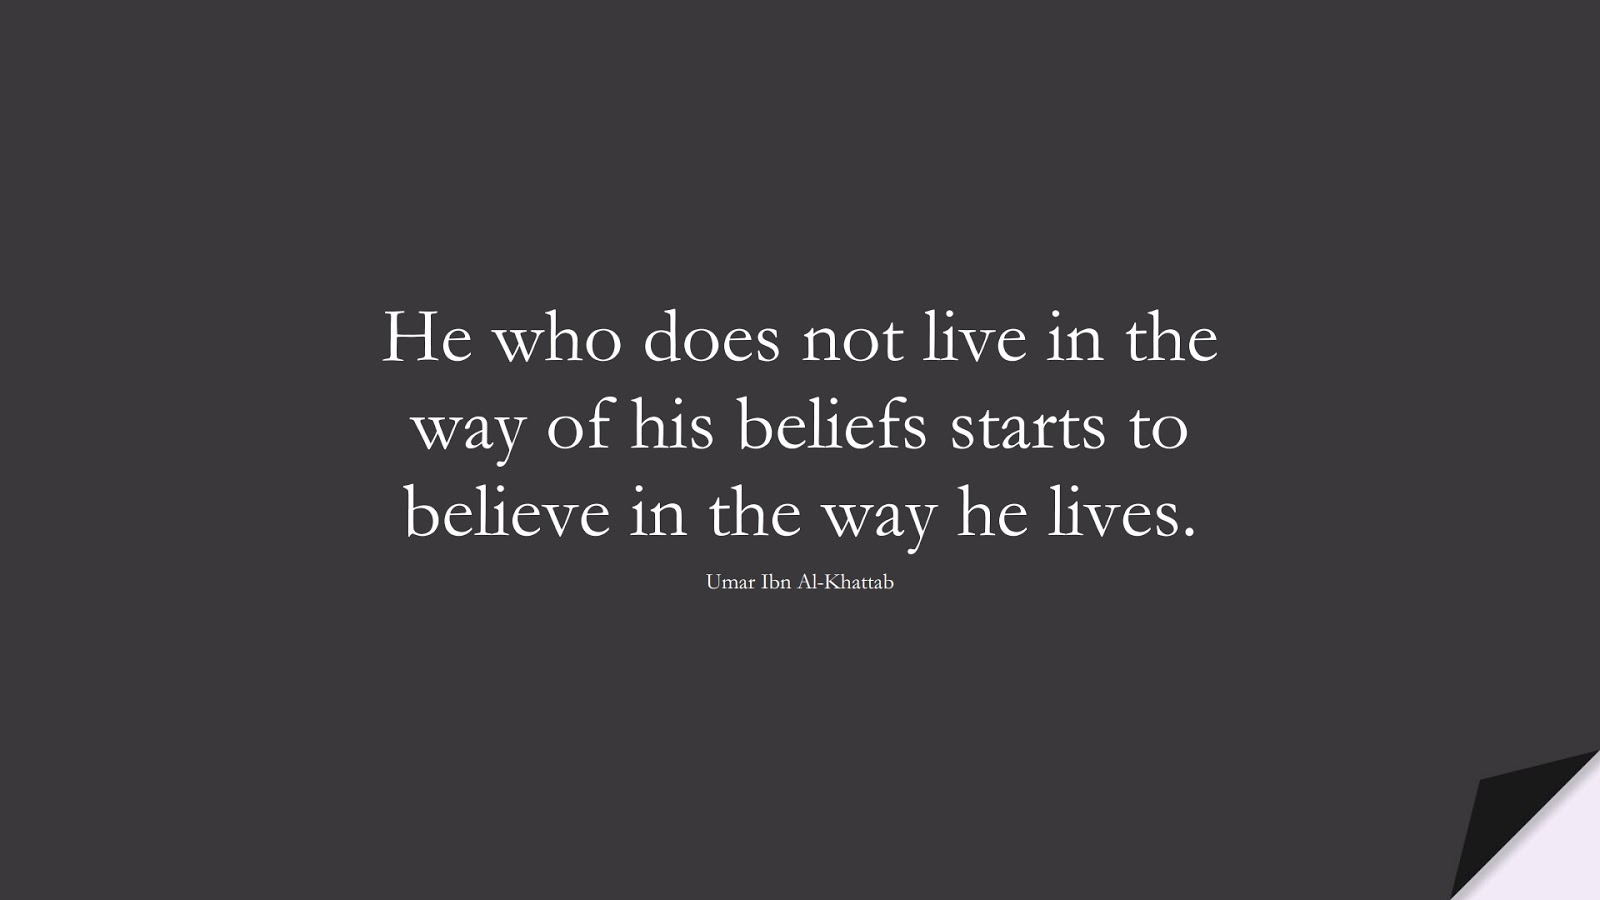 He who does not live in the way of his beliefs starts to believe in the way he lives. (Umar Ibn Al-Khattab);  #UmarQuotes